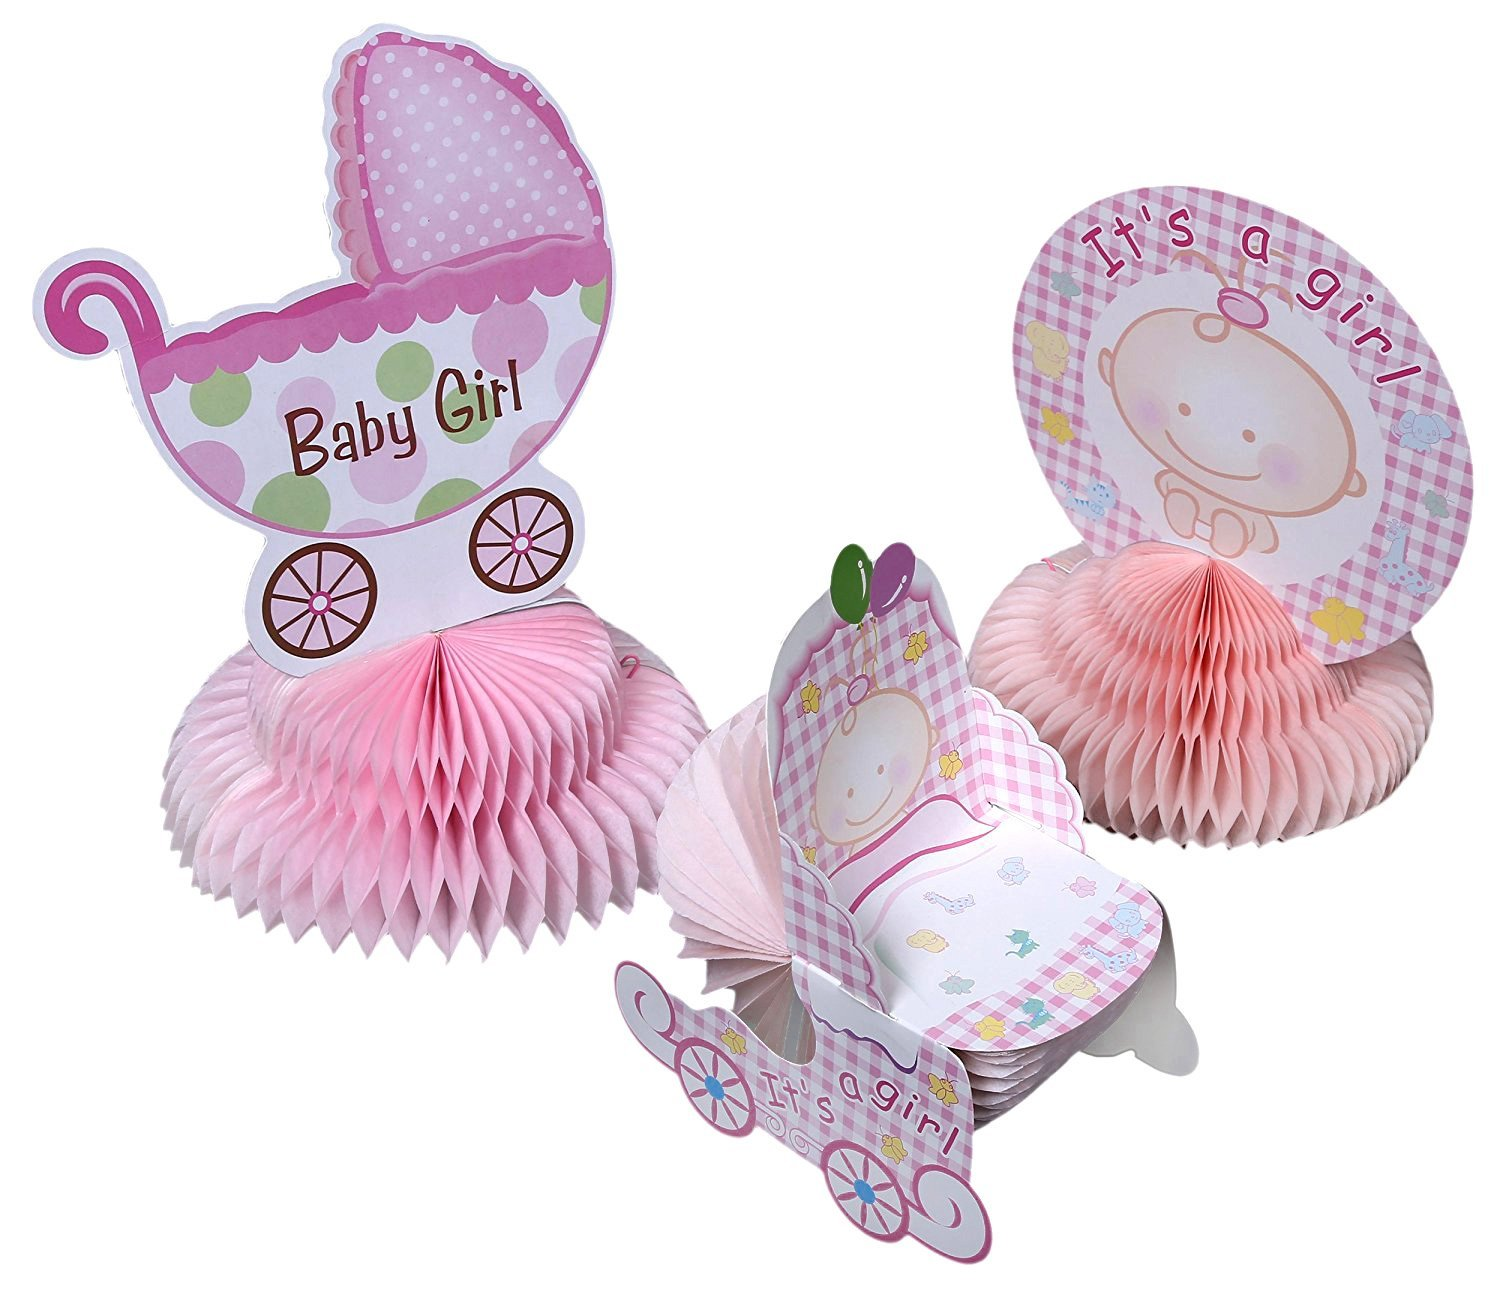 Cheap Table Centerpieces For Baby Shower Find Table Centerpieces